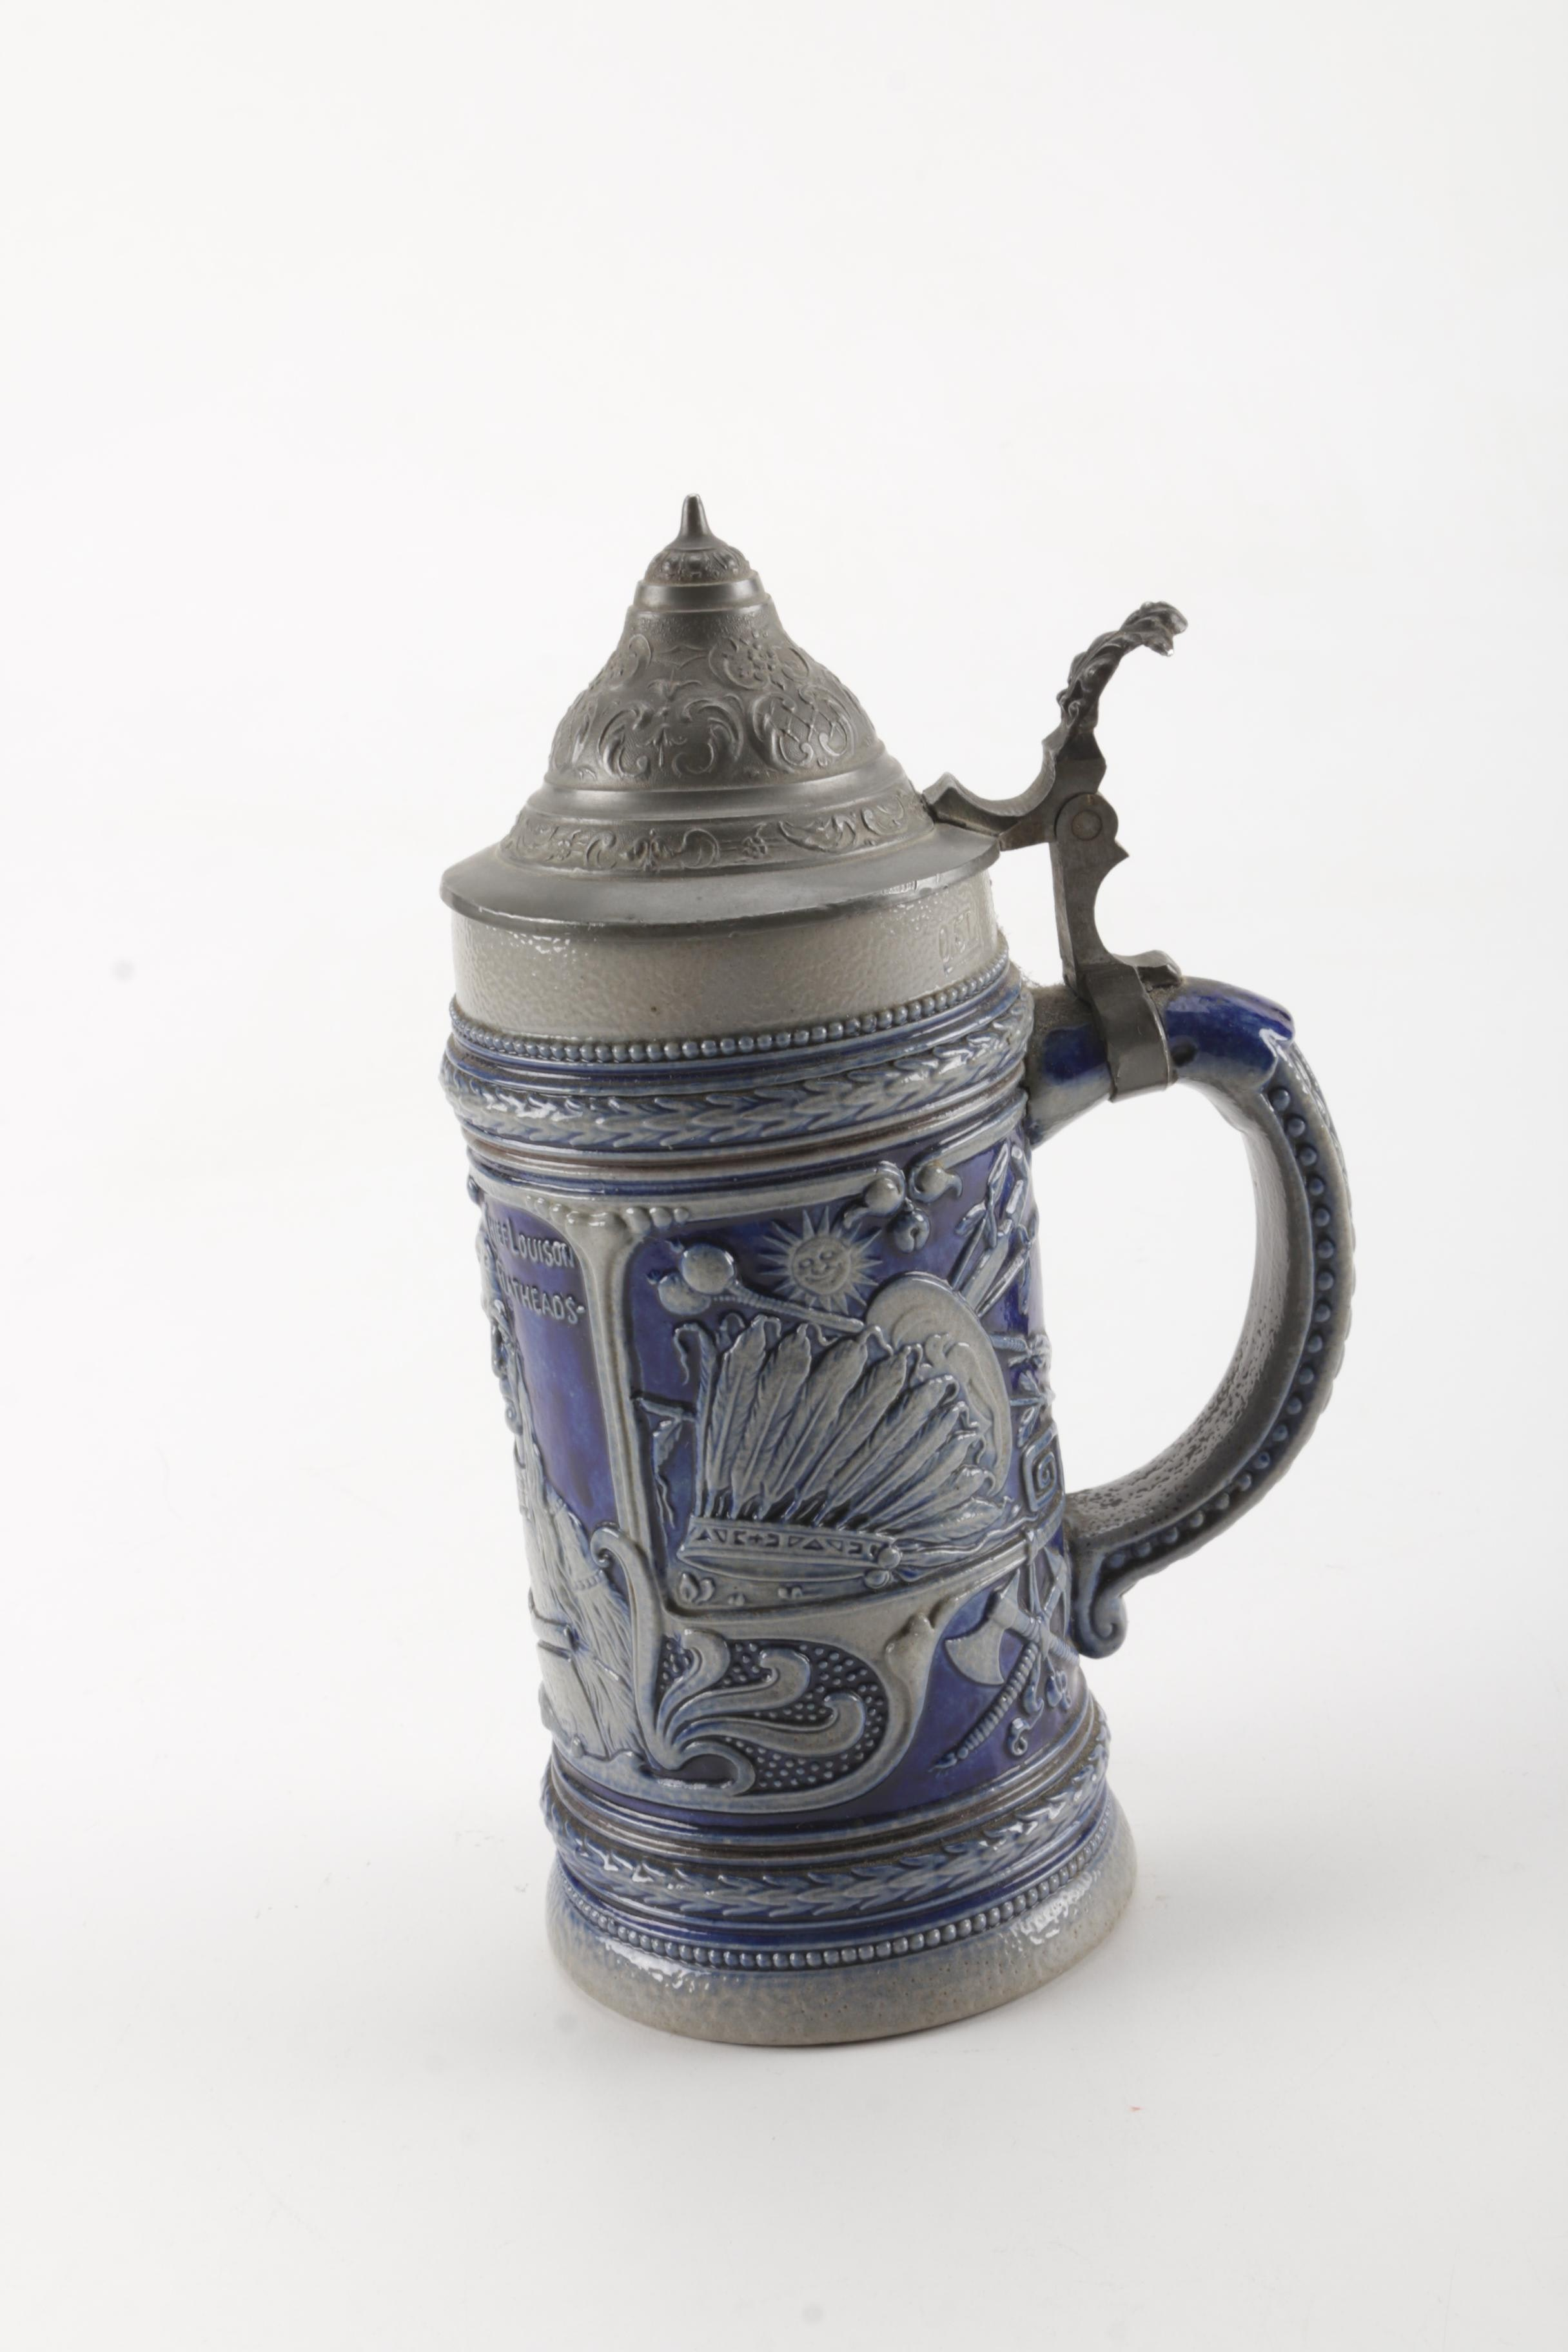 Native American Inspired German Ceramic Beer Stein With